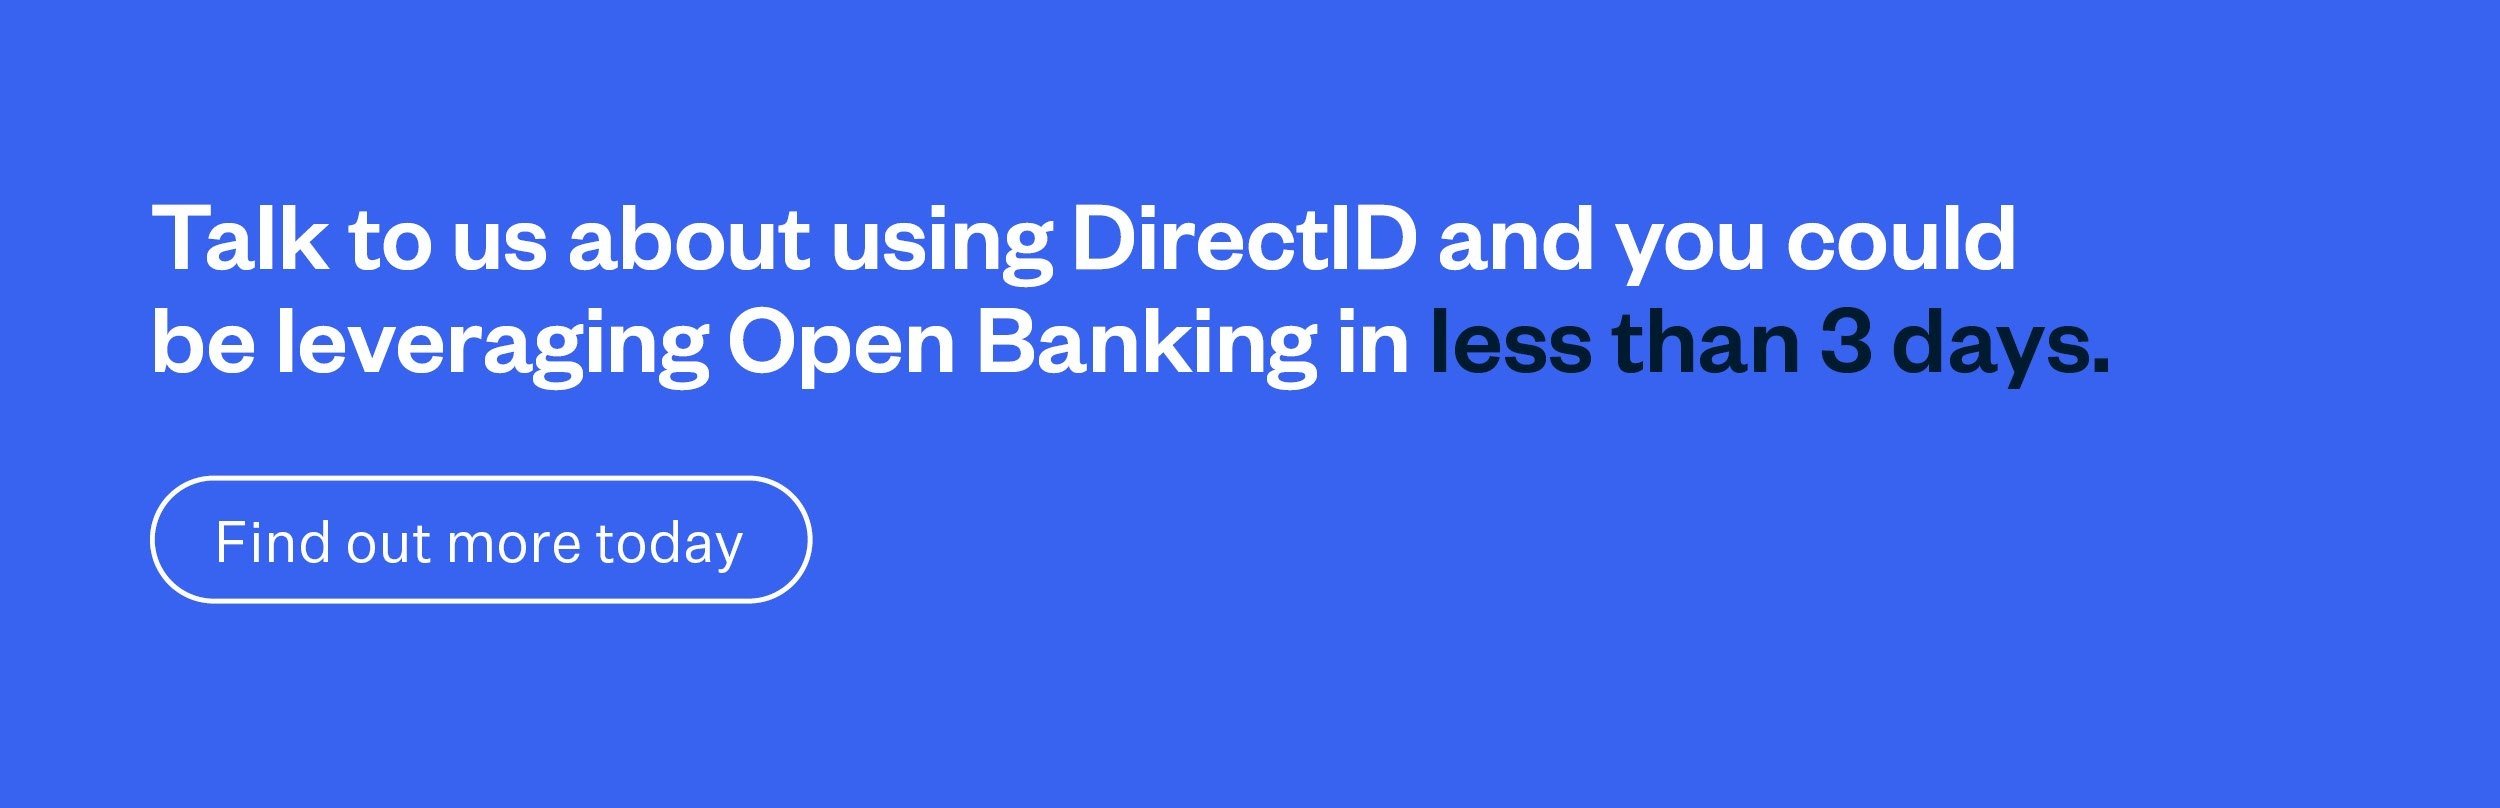 Talk to us about DirectID